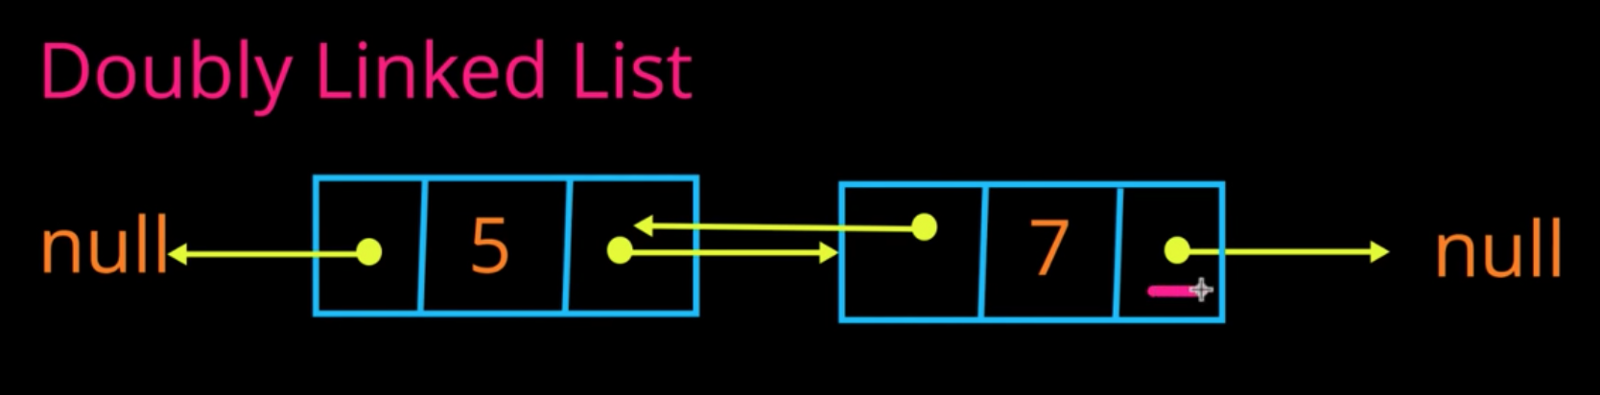 An example of a doubly linked list.